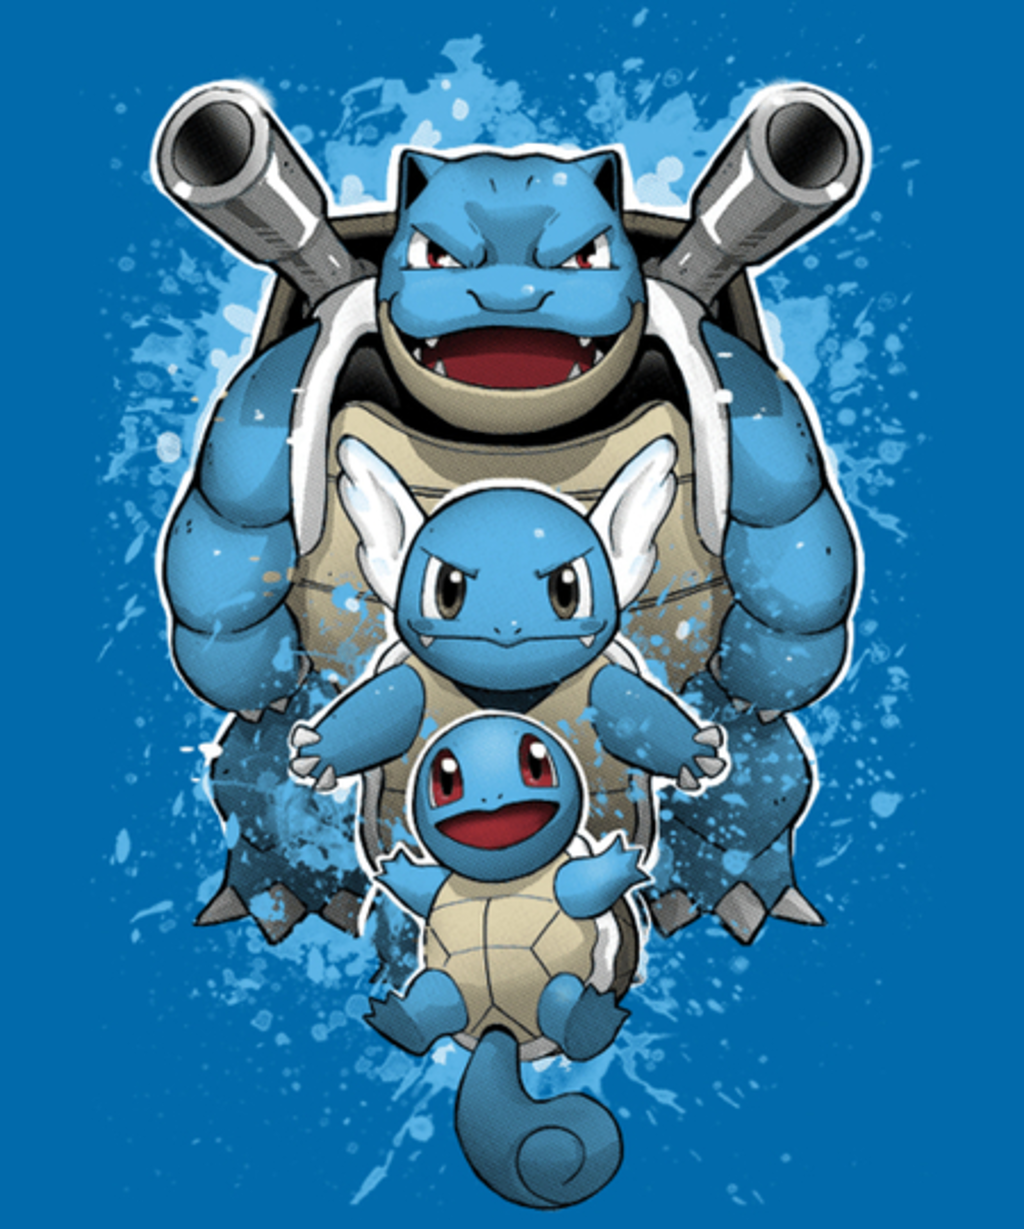 Qwertee: Water evolution